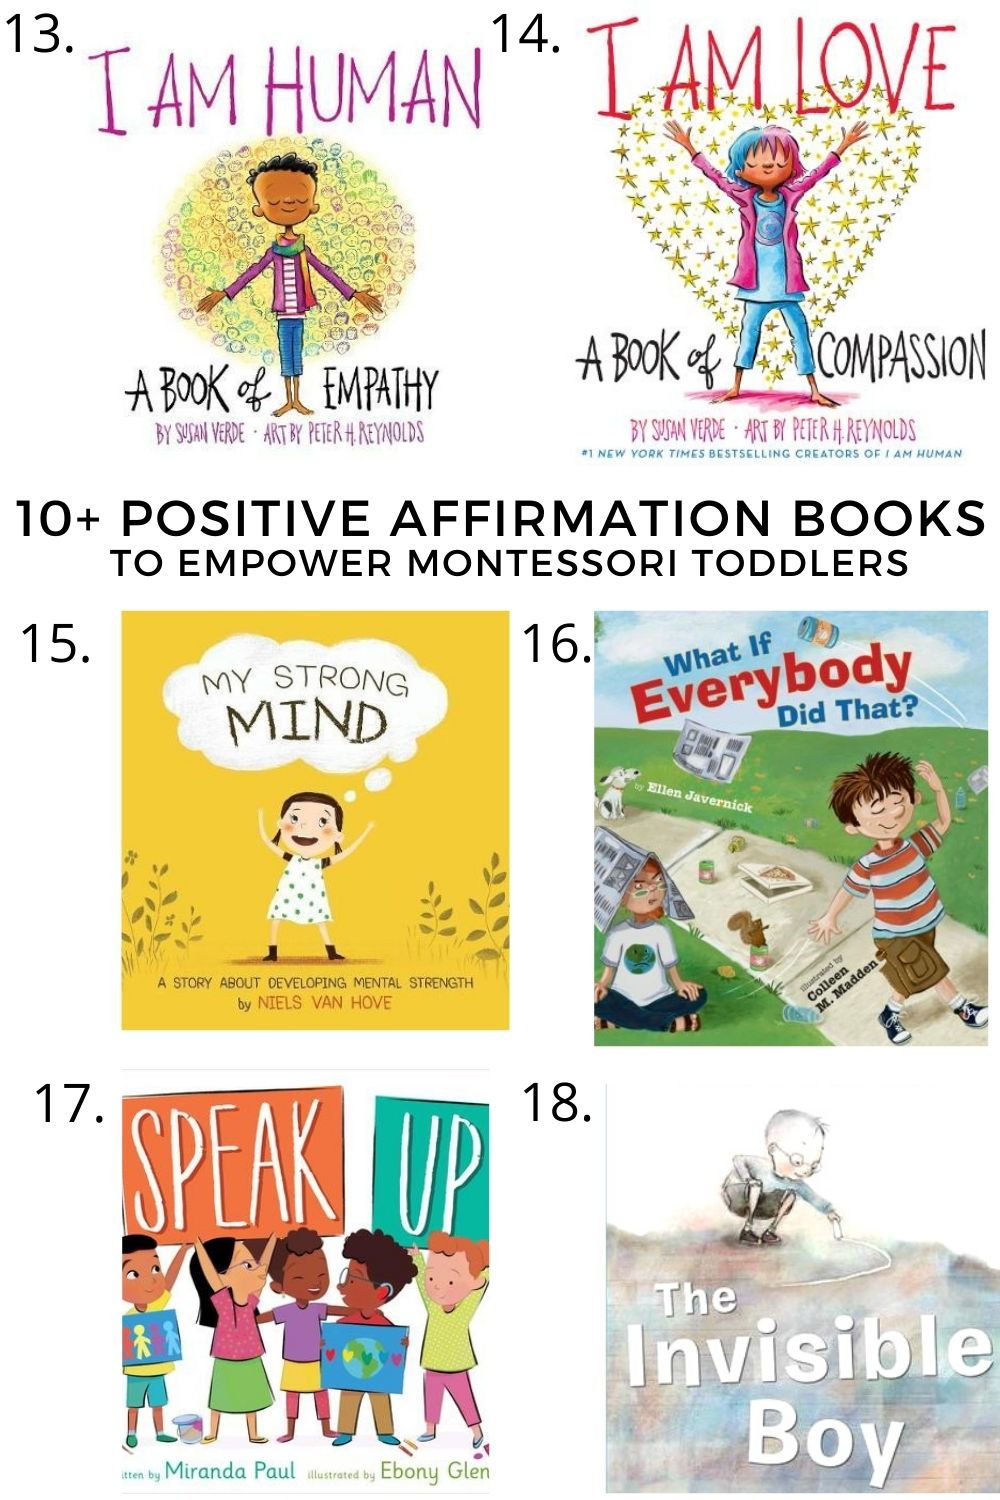 10+ Character Building Books for Montessori Toddlers to Learn Values